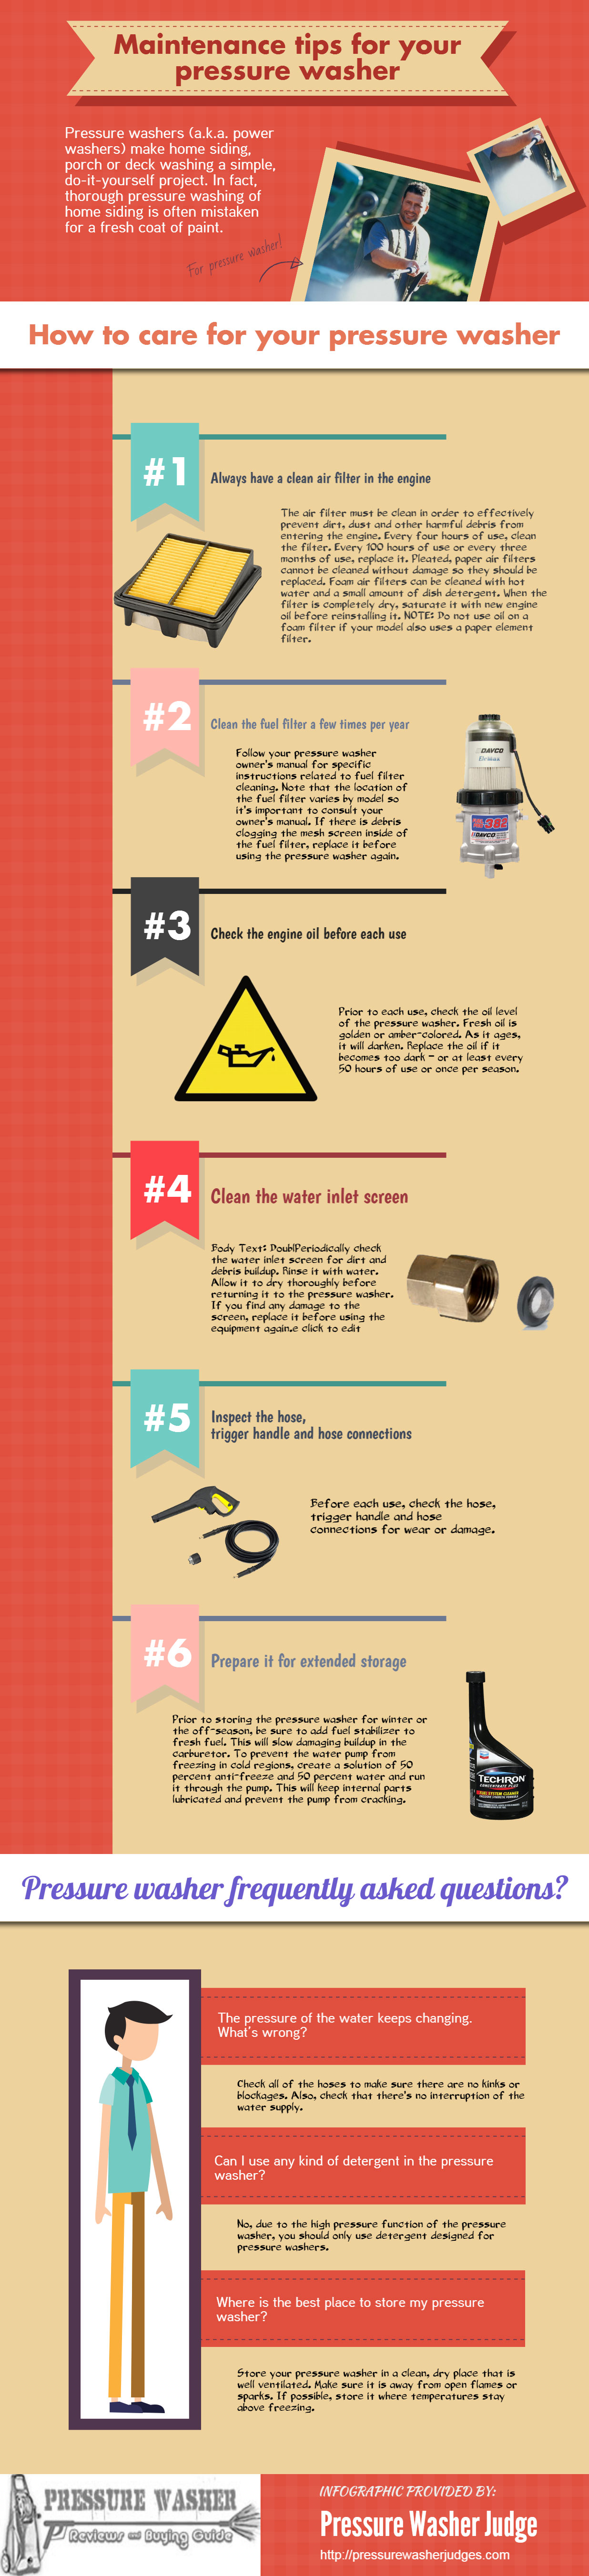 Infographic Maintenance tips for your pressure washer